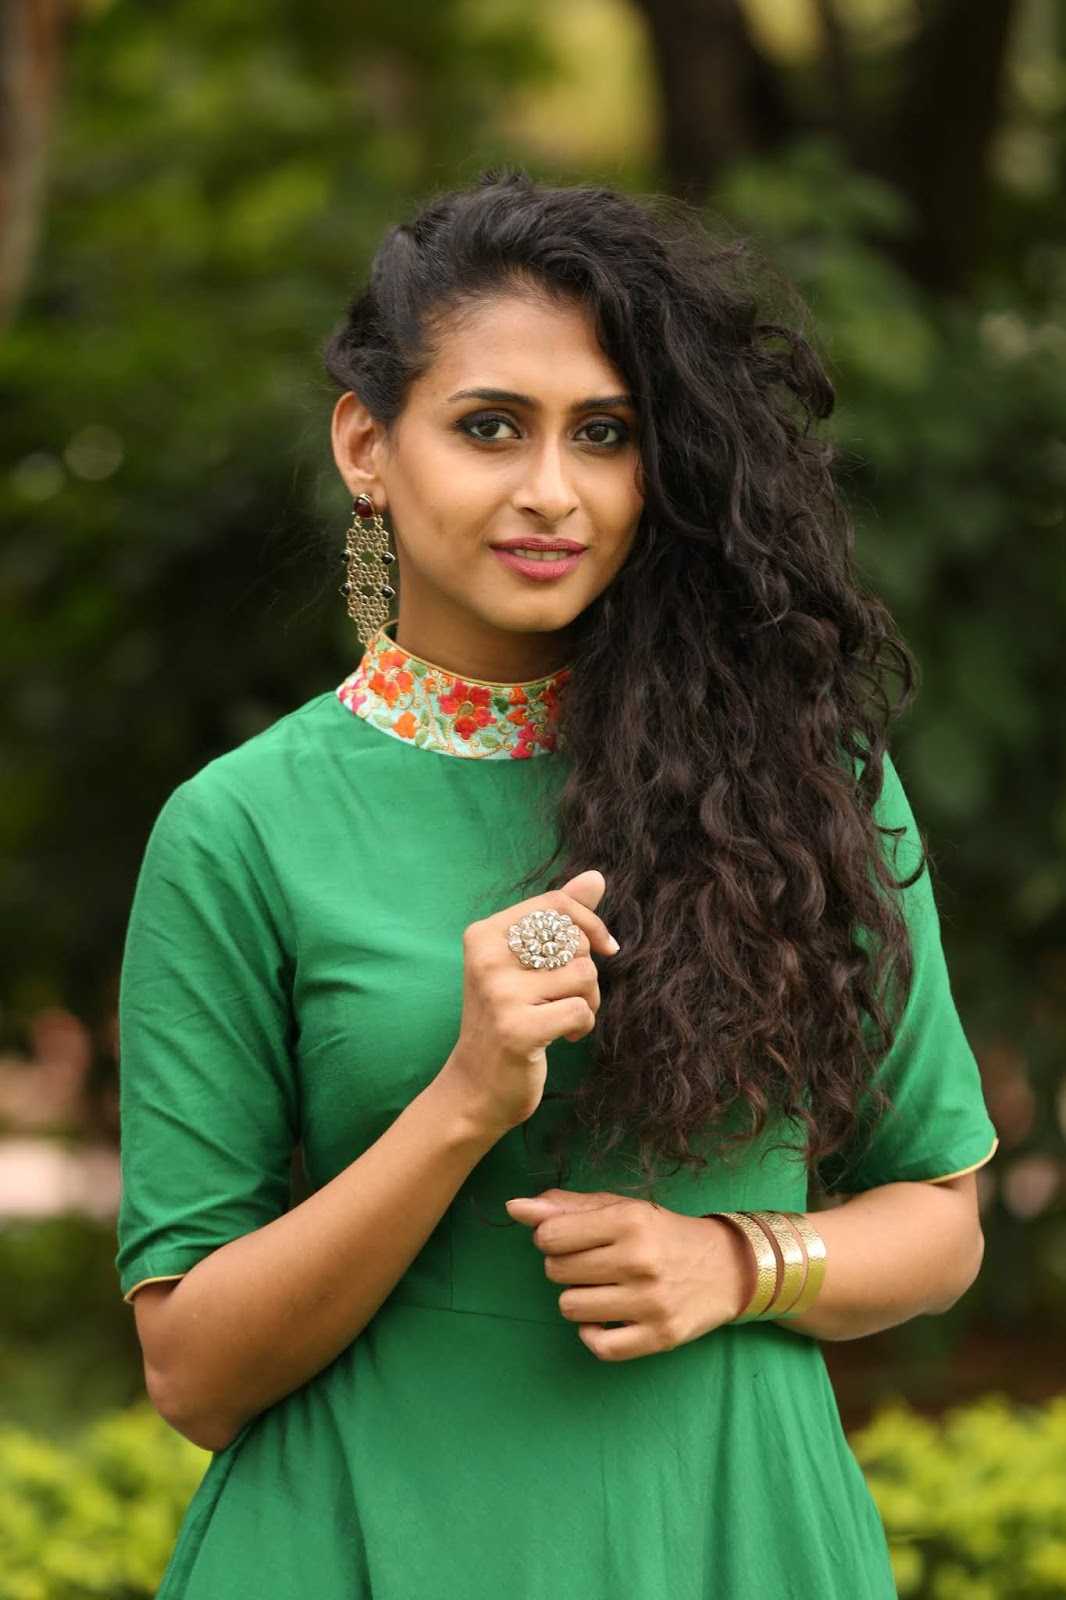 Nithya Naresh Curly Hair Cute Face Looking Stunning In Green Dress At Reverence Art Showcase August 2018